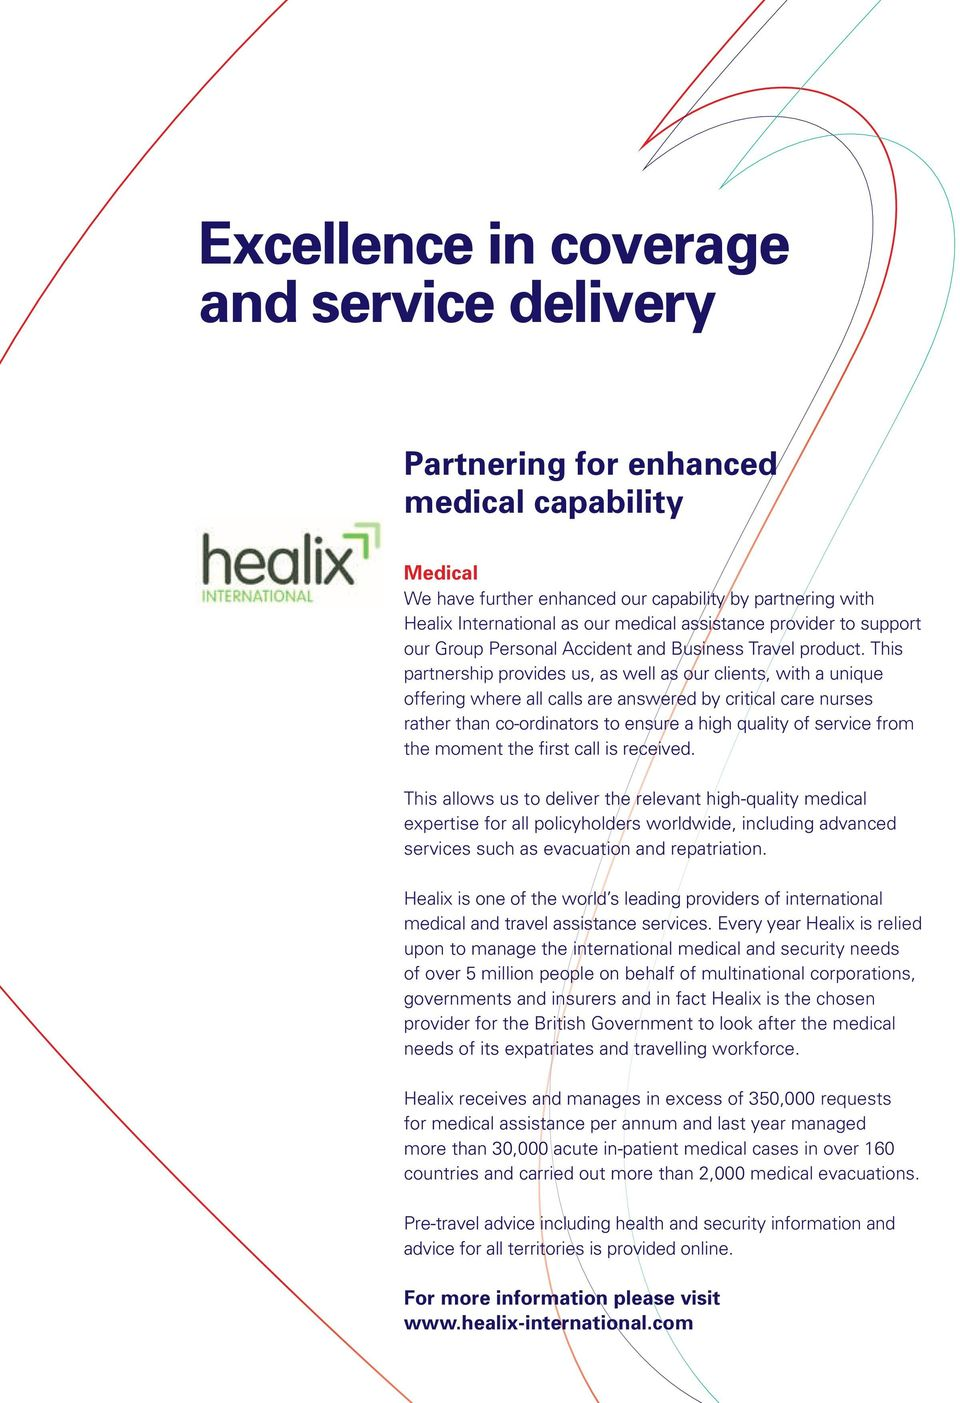 This partnership provides us, as well as our clients, with a unique offering where all calls are answered by critical care nurses rather than co-ordinators to ensure a high quality of service from